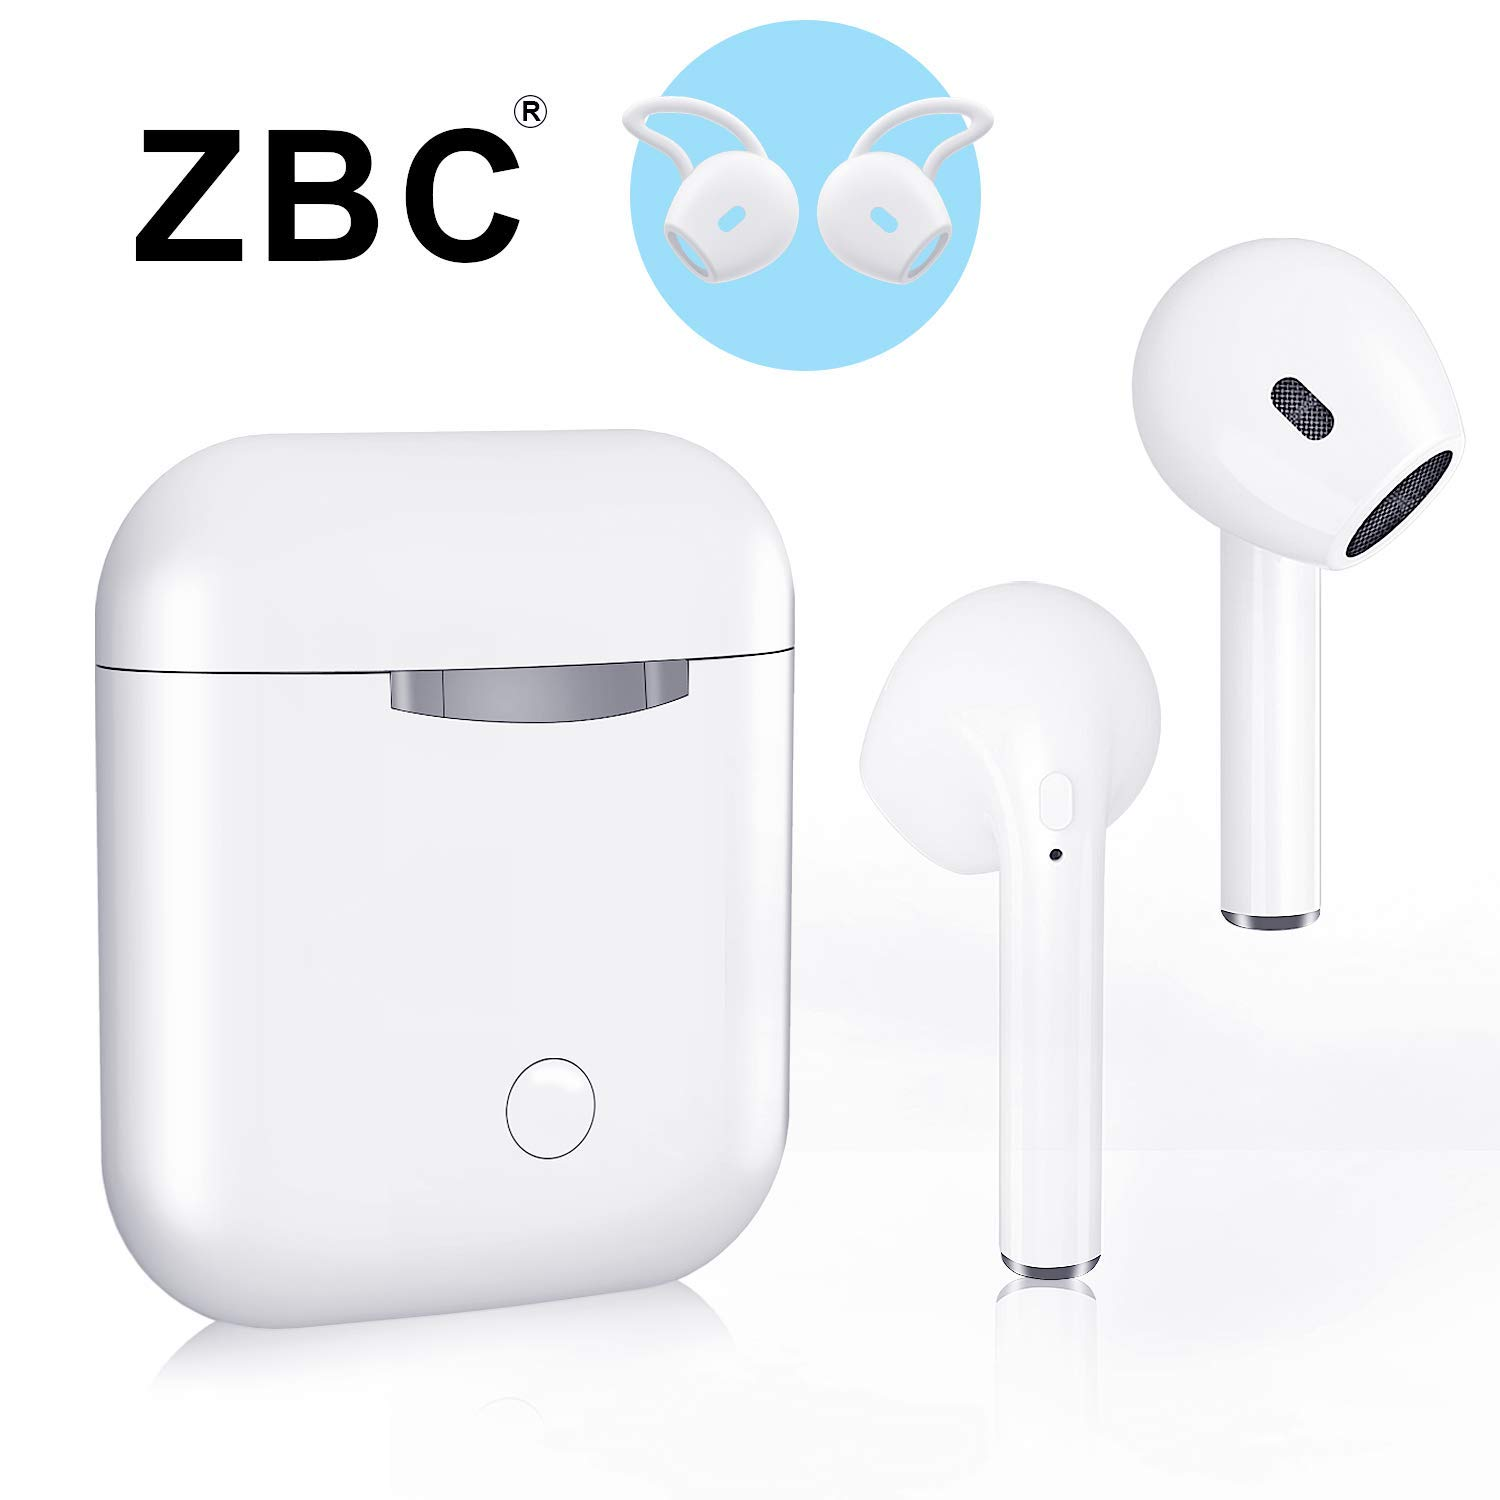 ZBC Wireless Earbuds I9 Bluetooth Earphones V5.0 Headphones in-Ear TWS Headsets Auto-Pair Airpods Mic Charging Case Sport Running Mini True Stereo Sound Noise Reduction Compatible iOS Android Samsung by ZBC (Image #2)